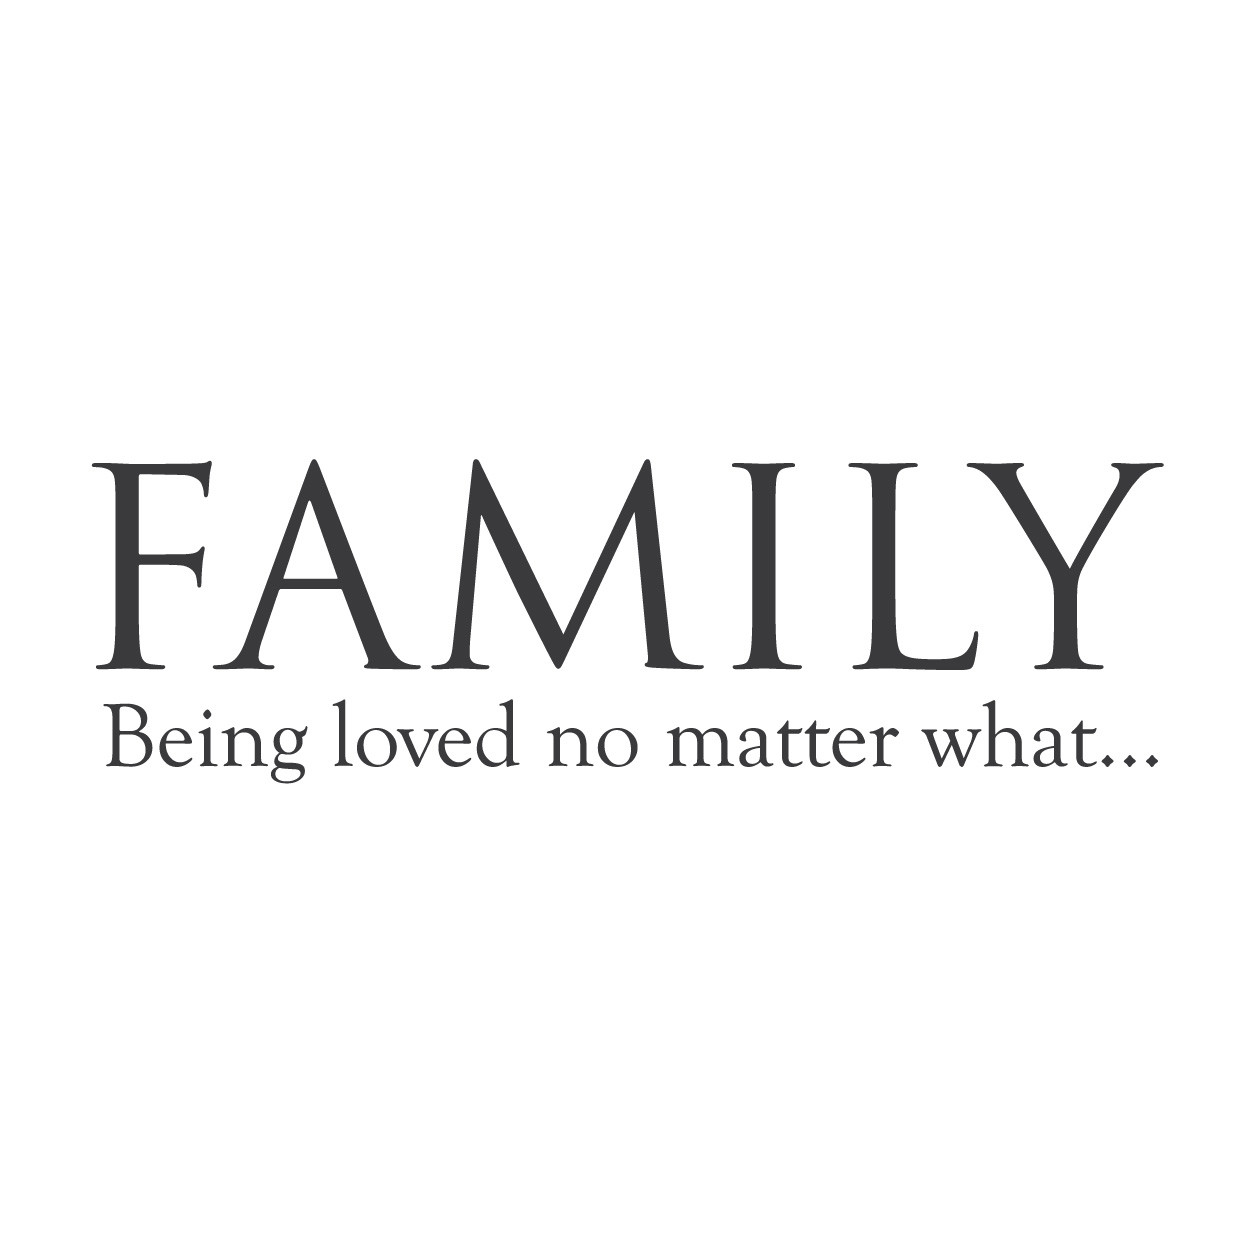 Family Quotes 60 Top Family Quotes And Sayings